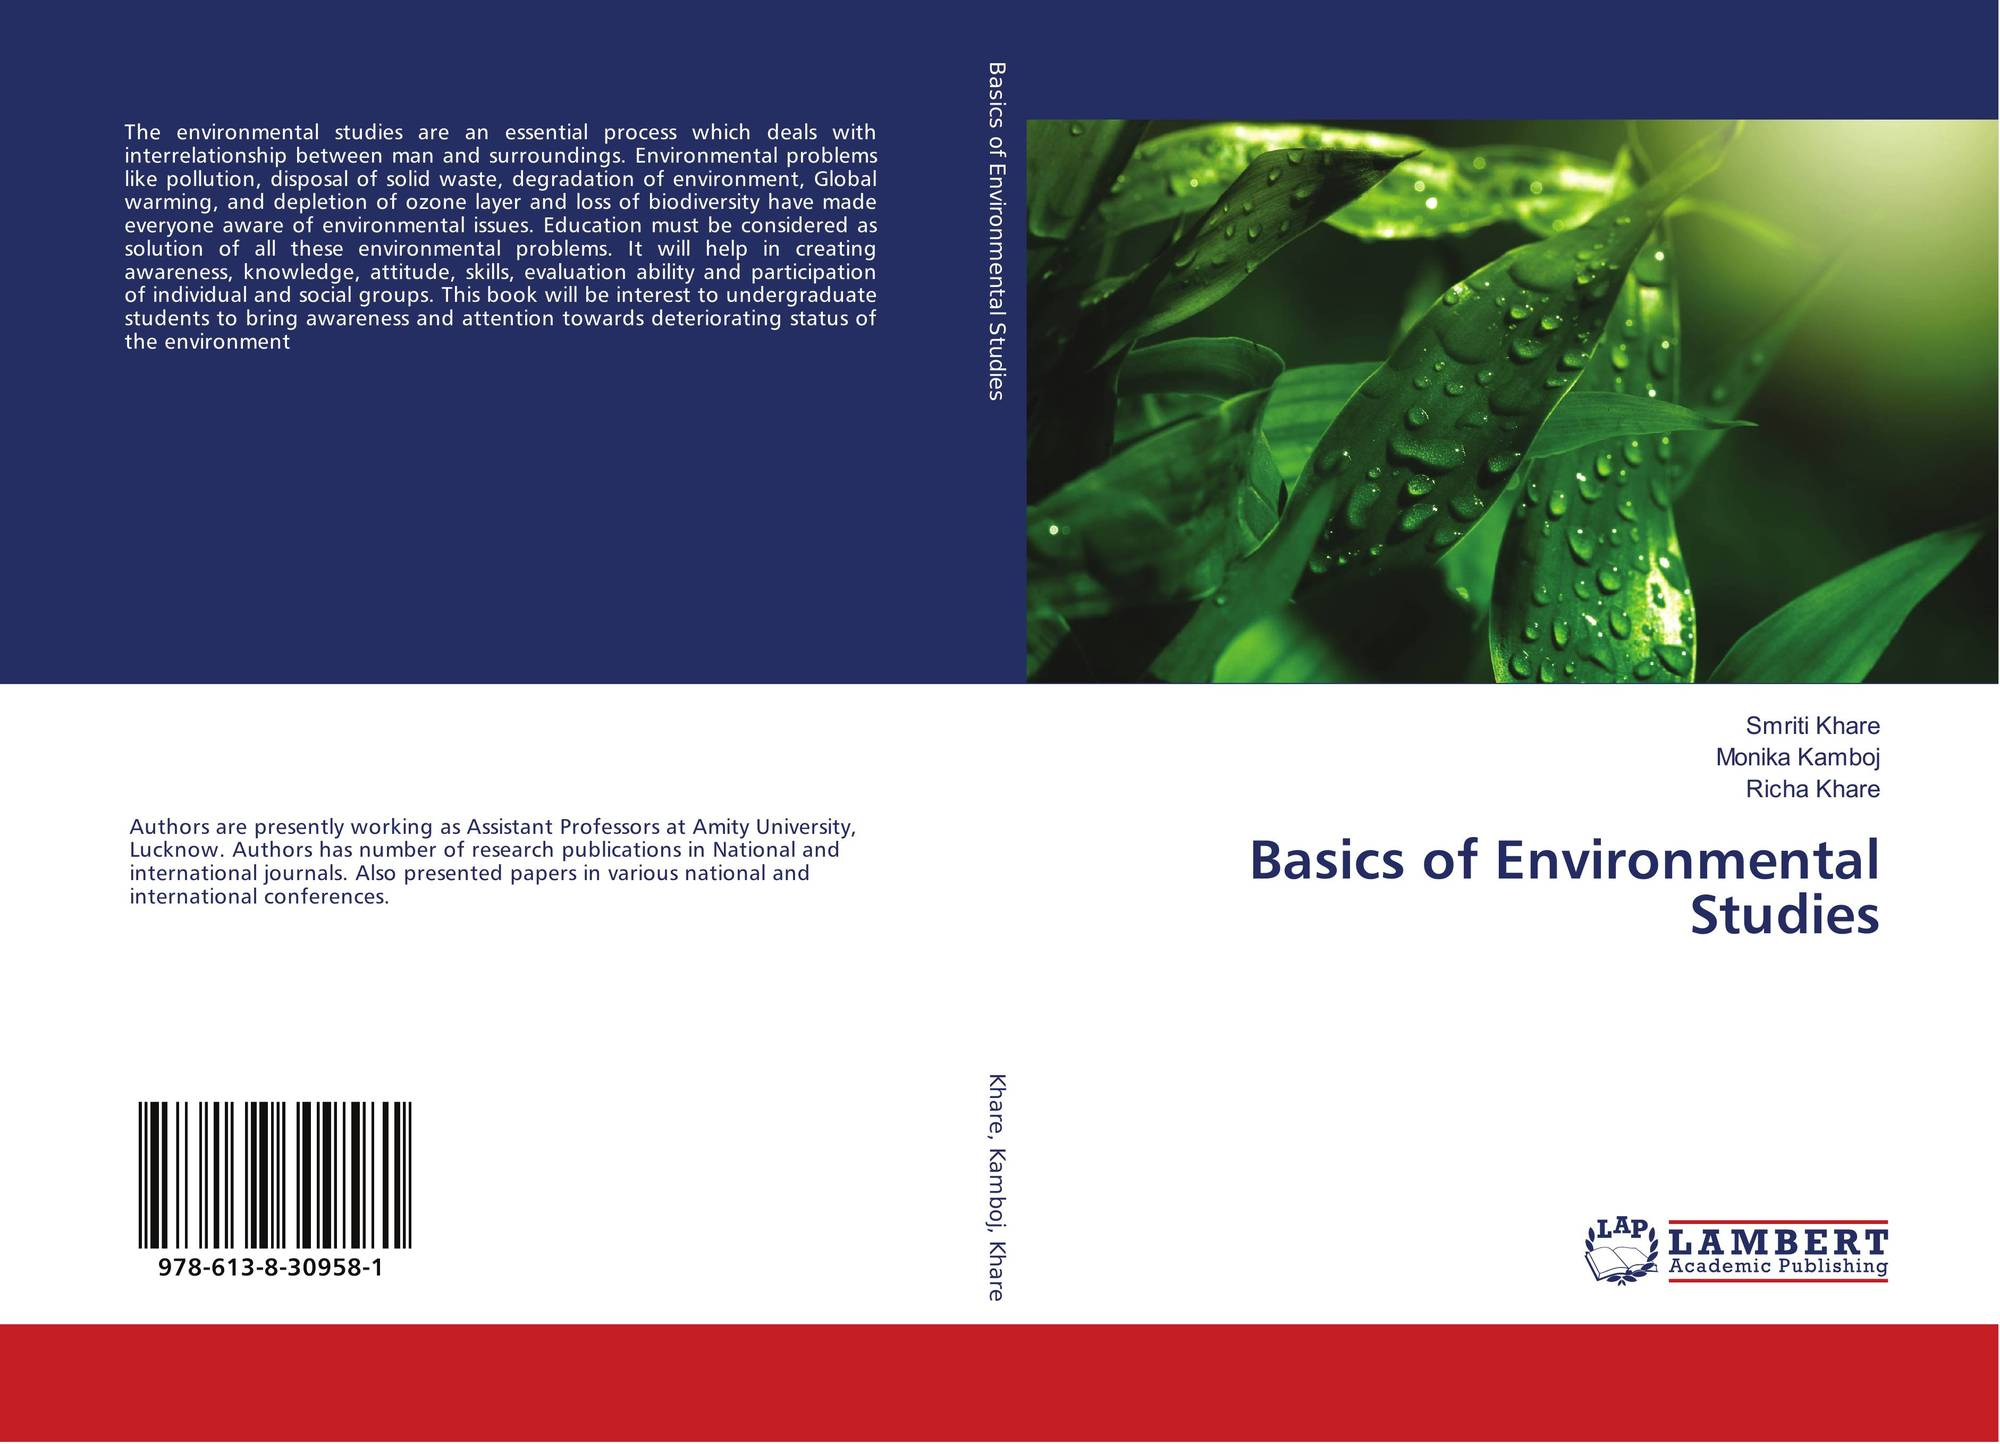 a research paper on the different scientific studies about the environmental issues brought by indus Download free essays, term papers, and research papers.